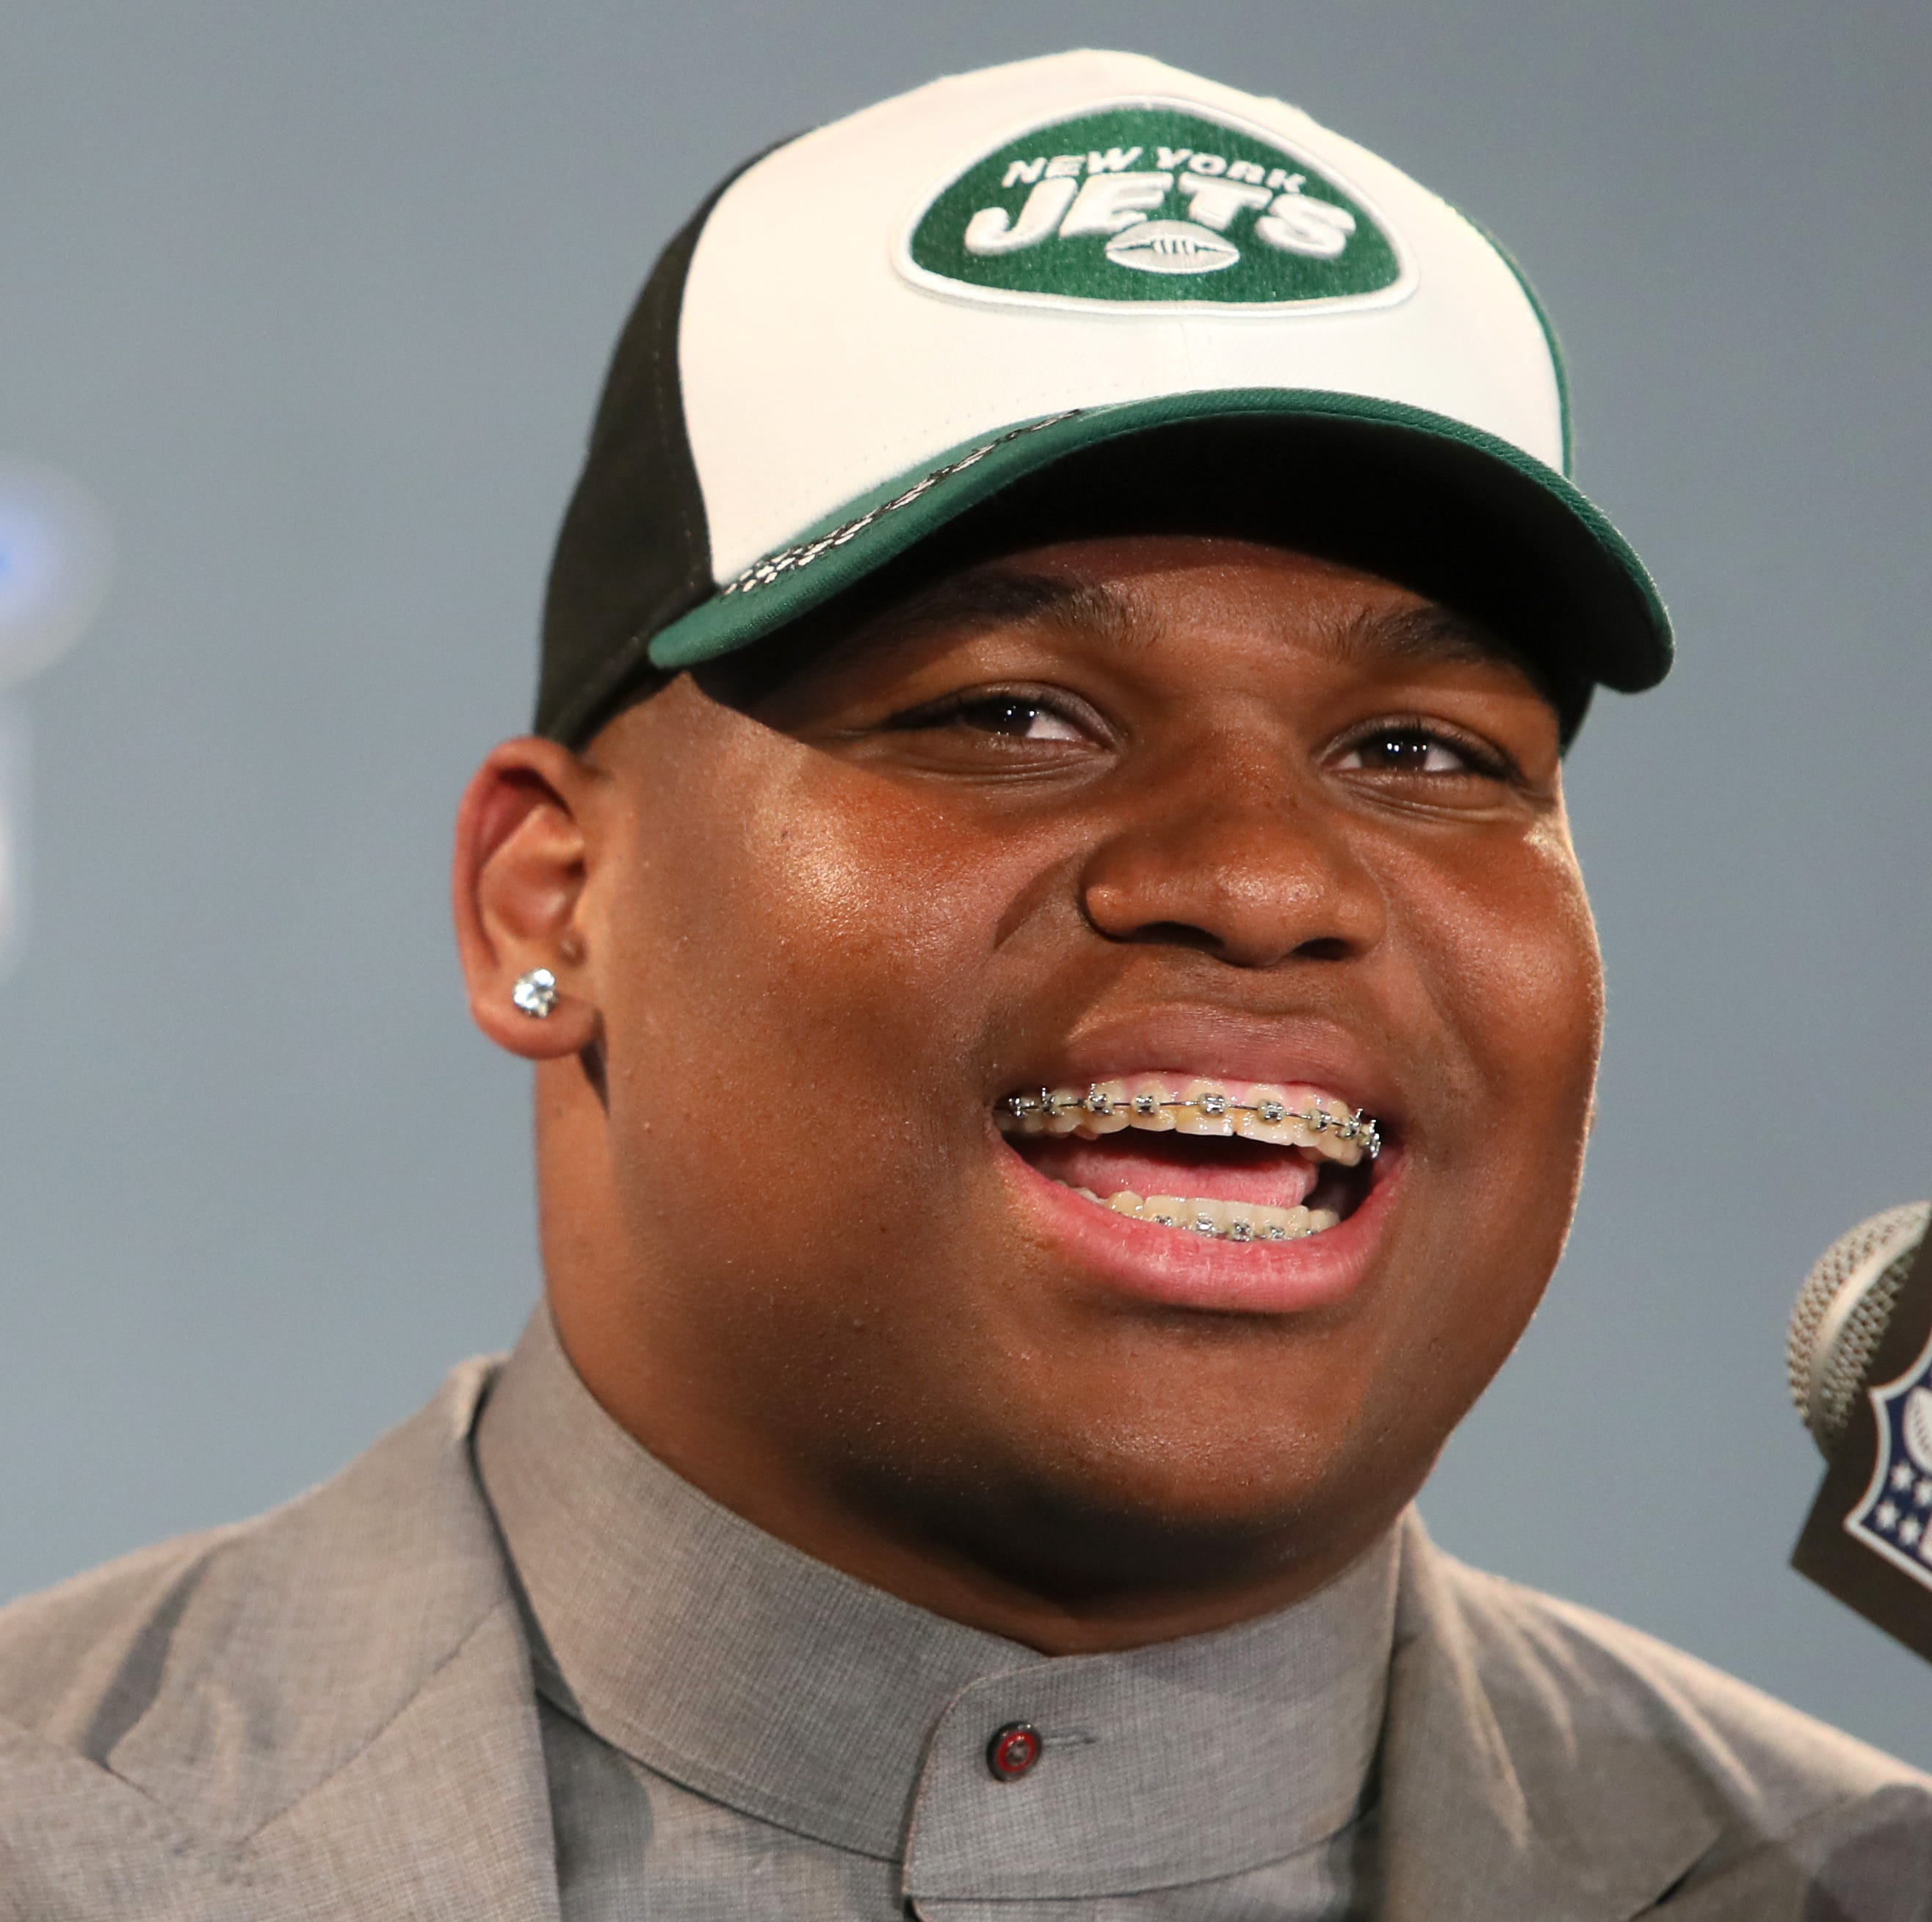 NFL Draft grades: A pick-by-pick look at how the NY Jets did with their six selections